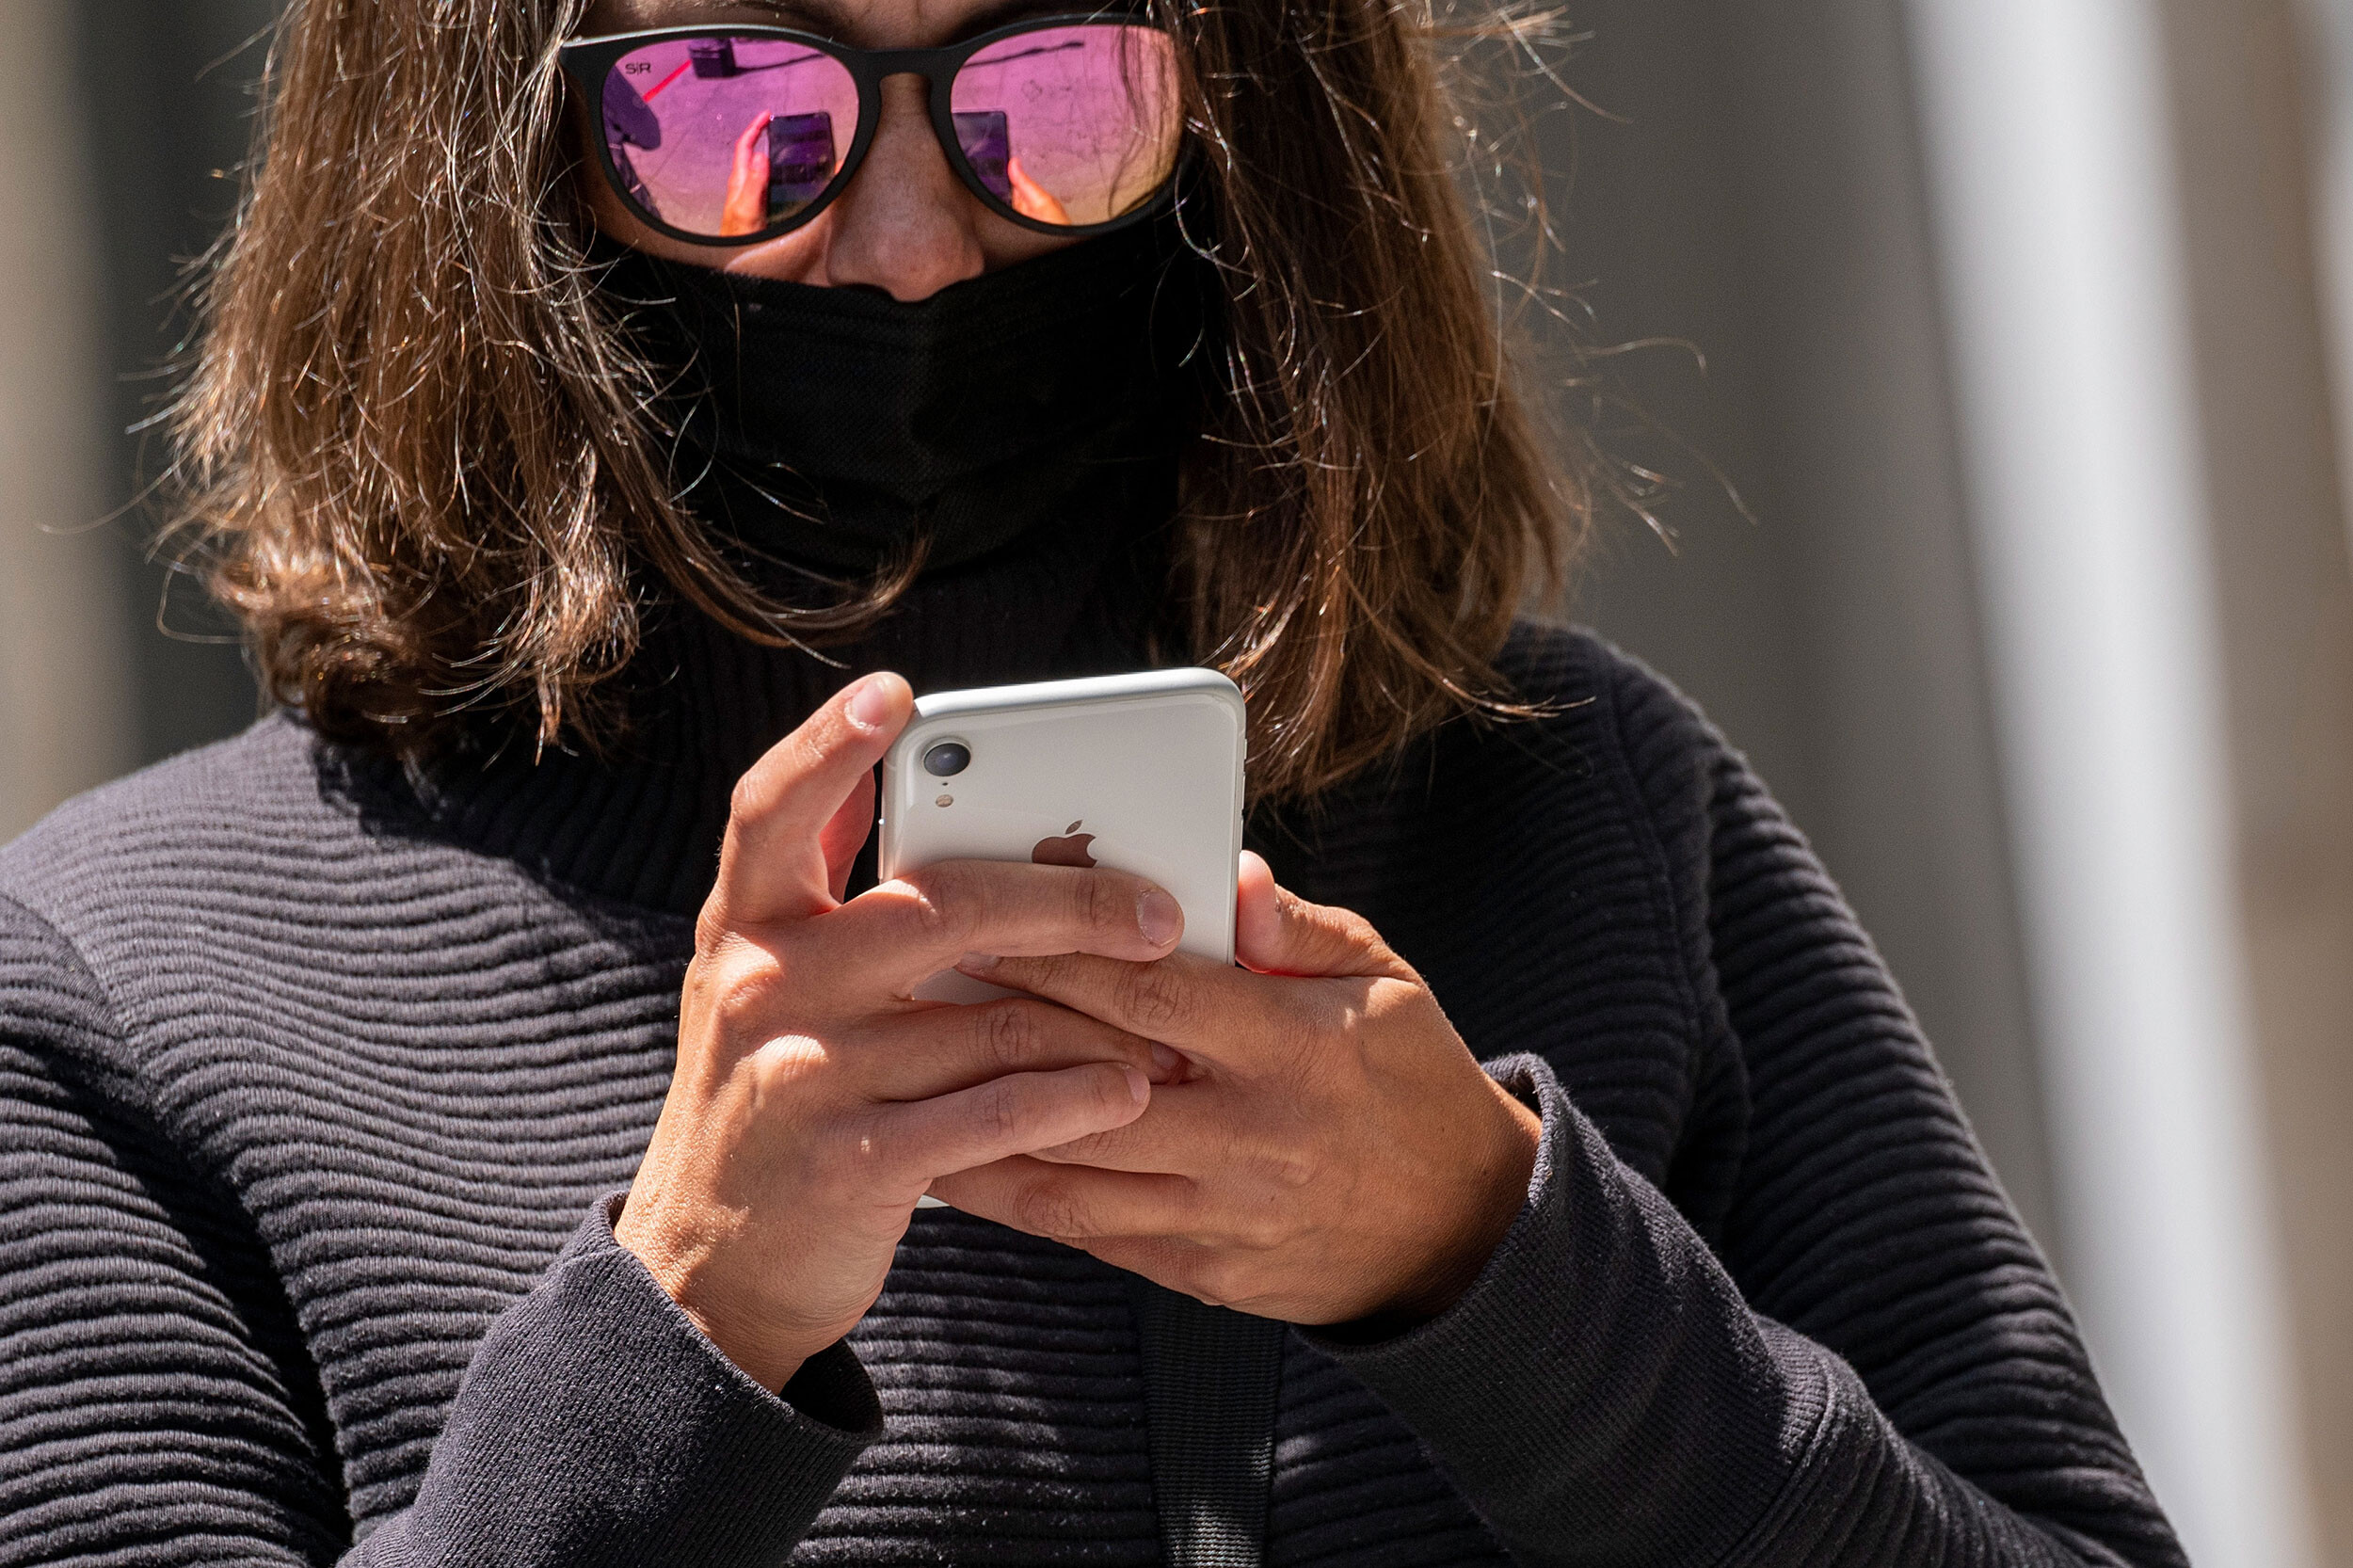 <i>David Paul Morris/Bloomberg/Getty Images</i><br/>Many of changes coming to iOS 15 reflect how our needs have changed during the pandemic.